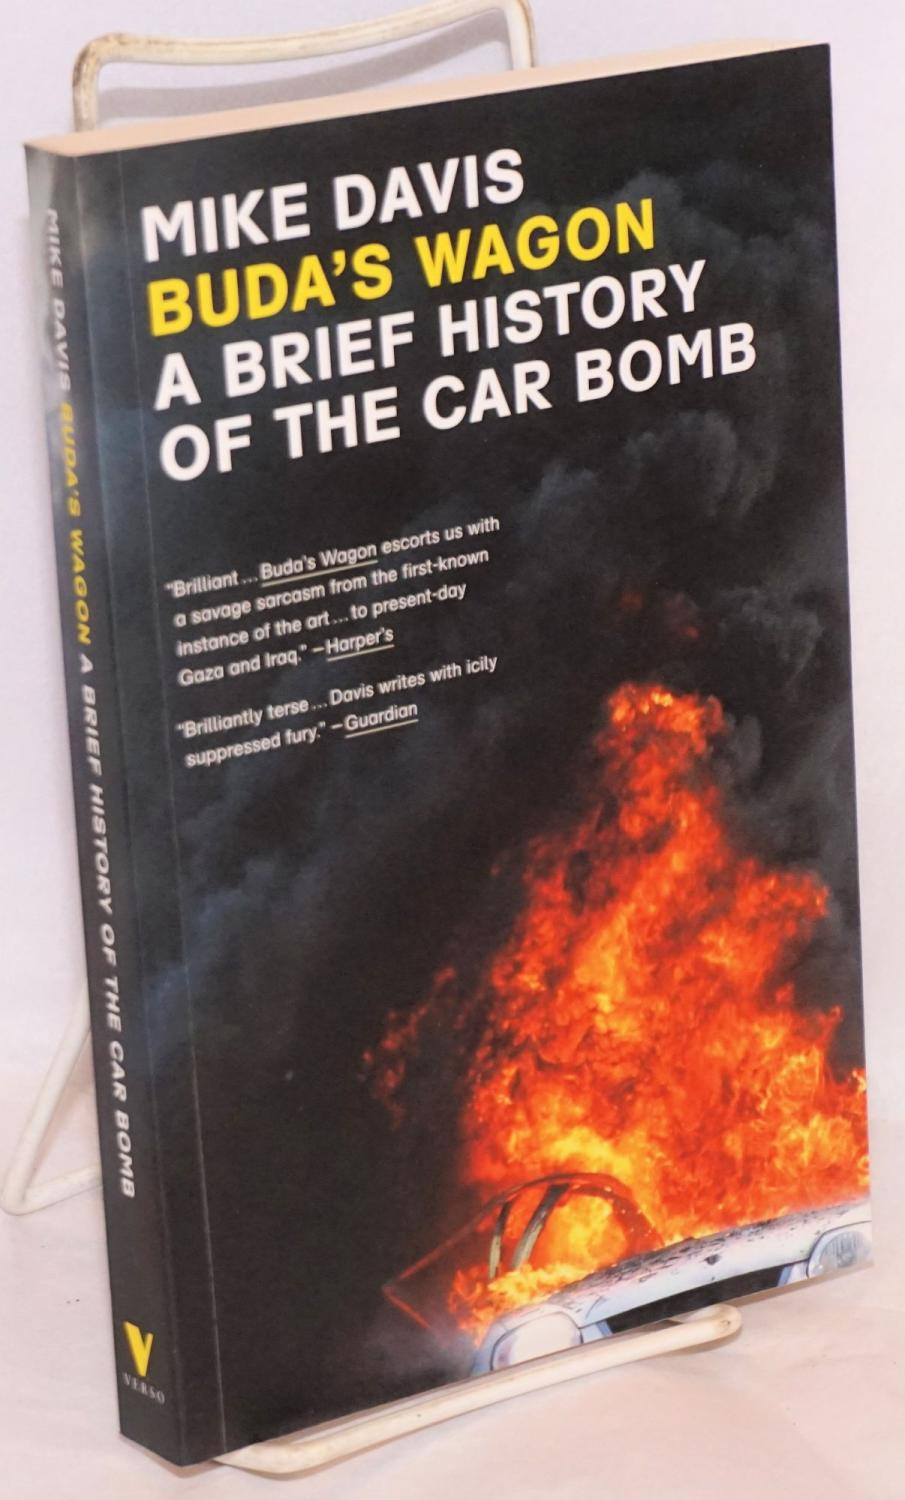 History of the Car Bomb